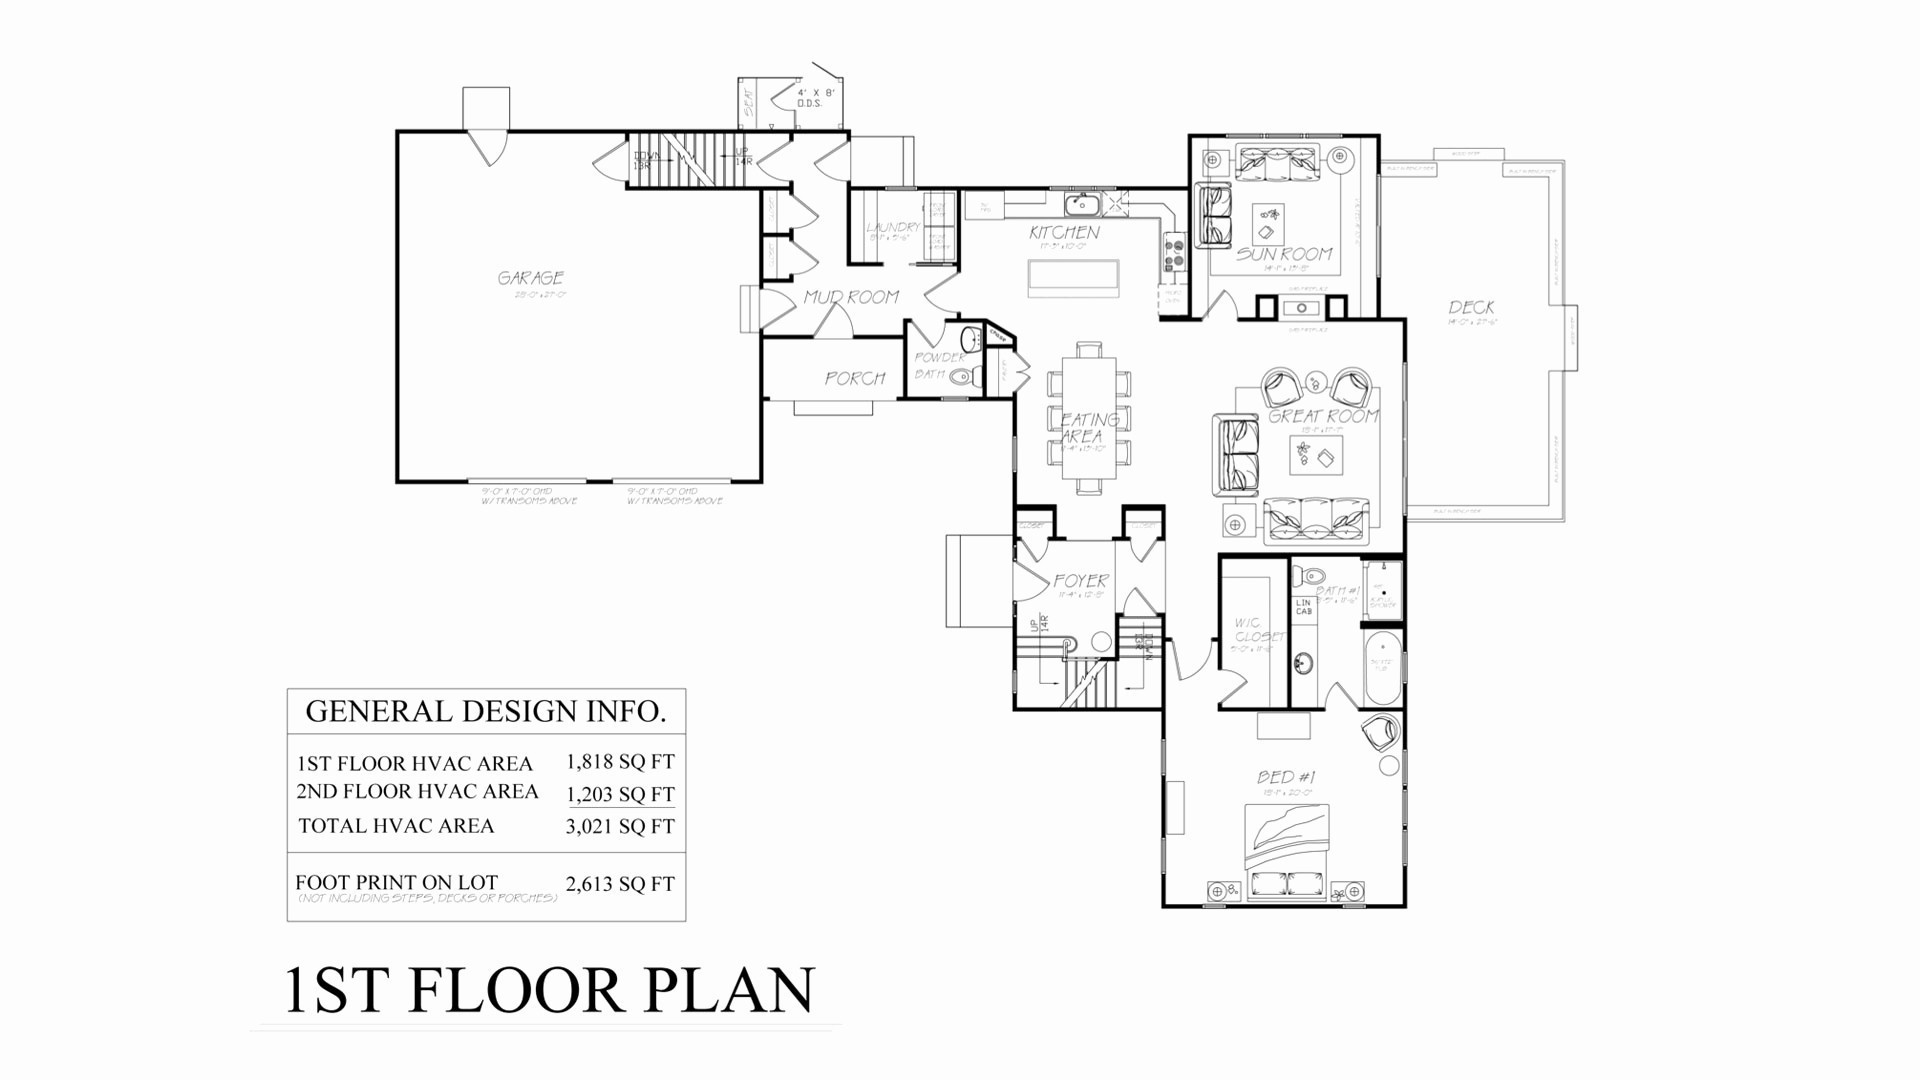 Southern Living at Home Vase Of Large Floor Plans New 9 Beautiful Floor Vases Qosy for Tall Vaseh In Large Floor Plans Inspirational 1 Story House Plans Lovely 1 Story House Plans Best Split Floor